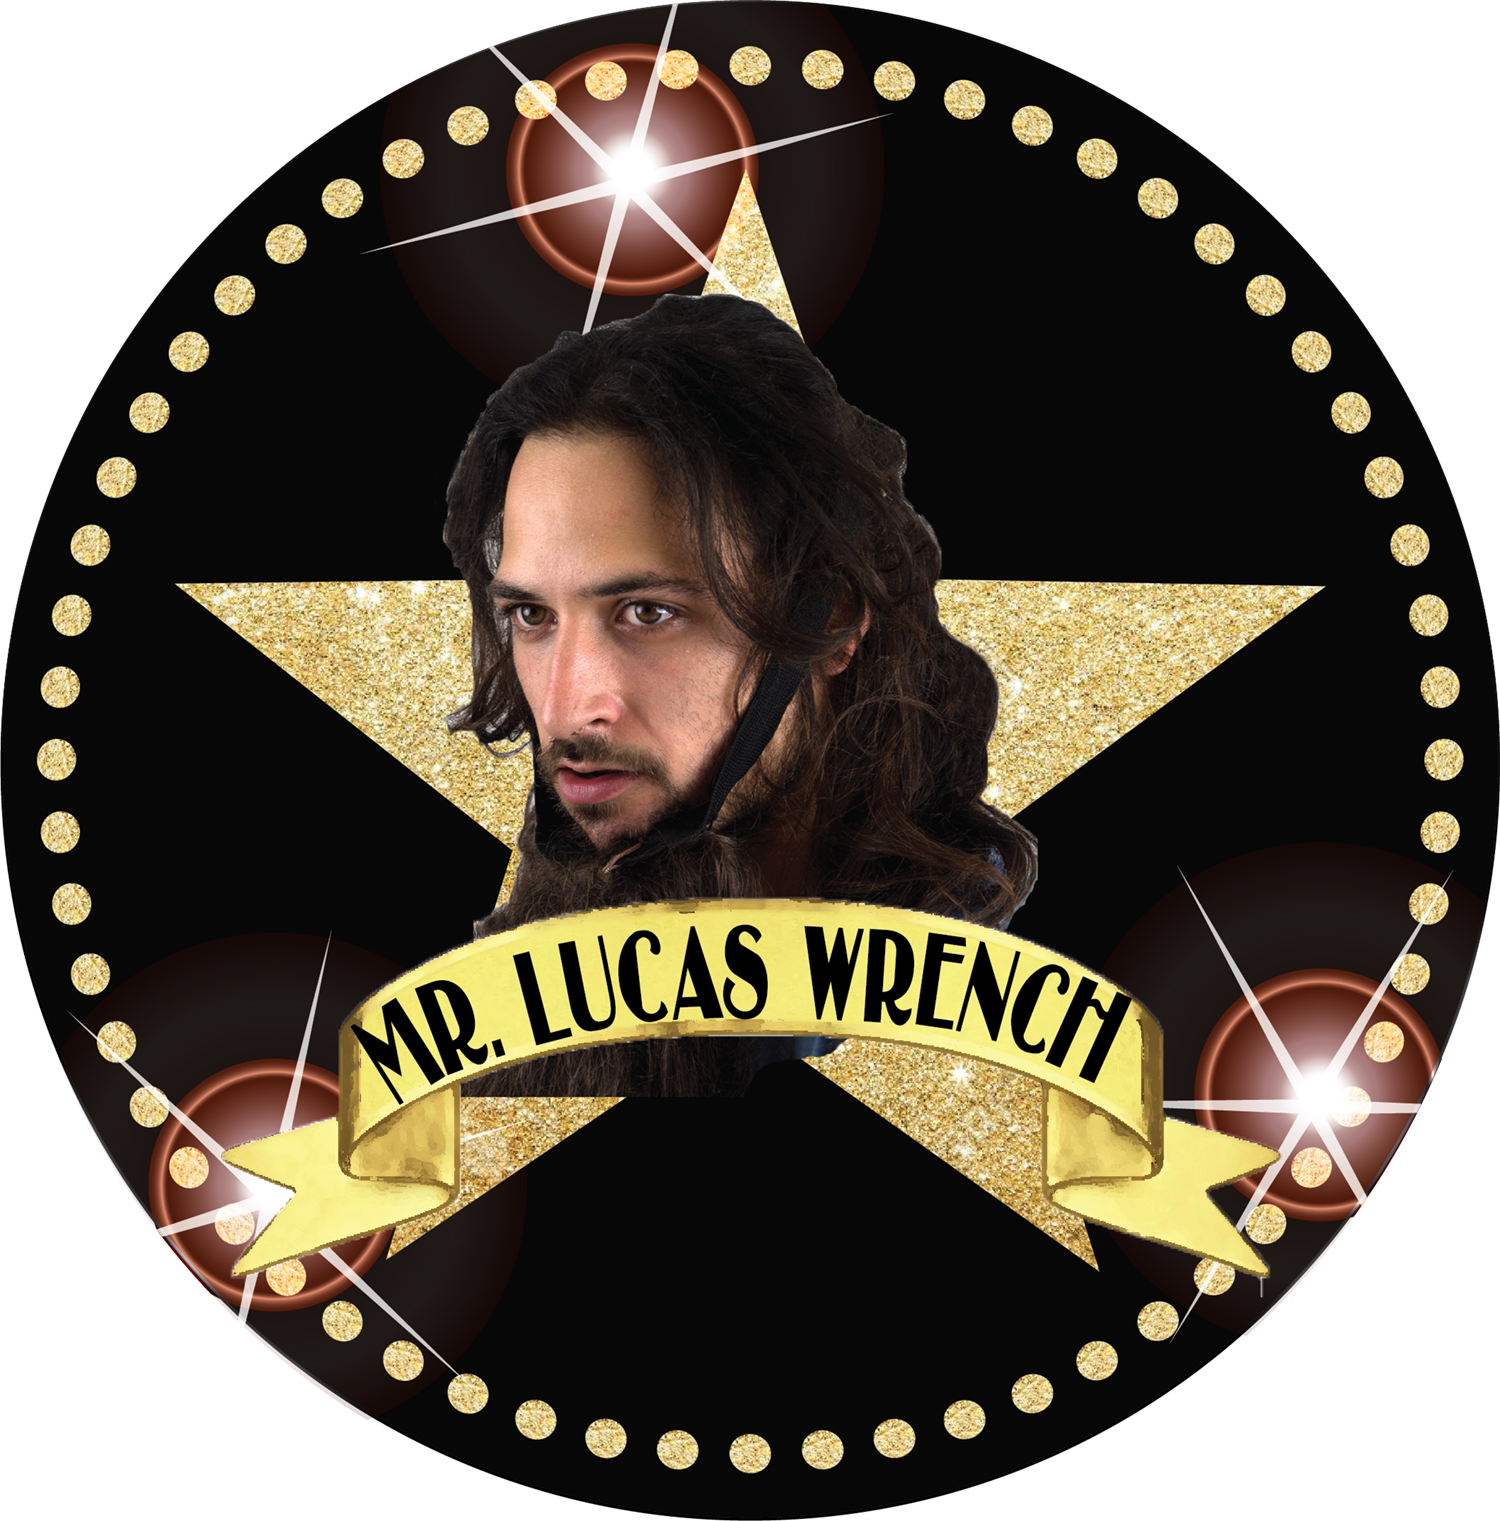 Dramaturino Lucas Wrench, alias Chance Happenstance, is an artist currently employed as Associate Curator at  Machine Project  in Echo Park.